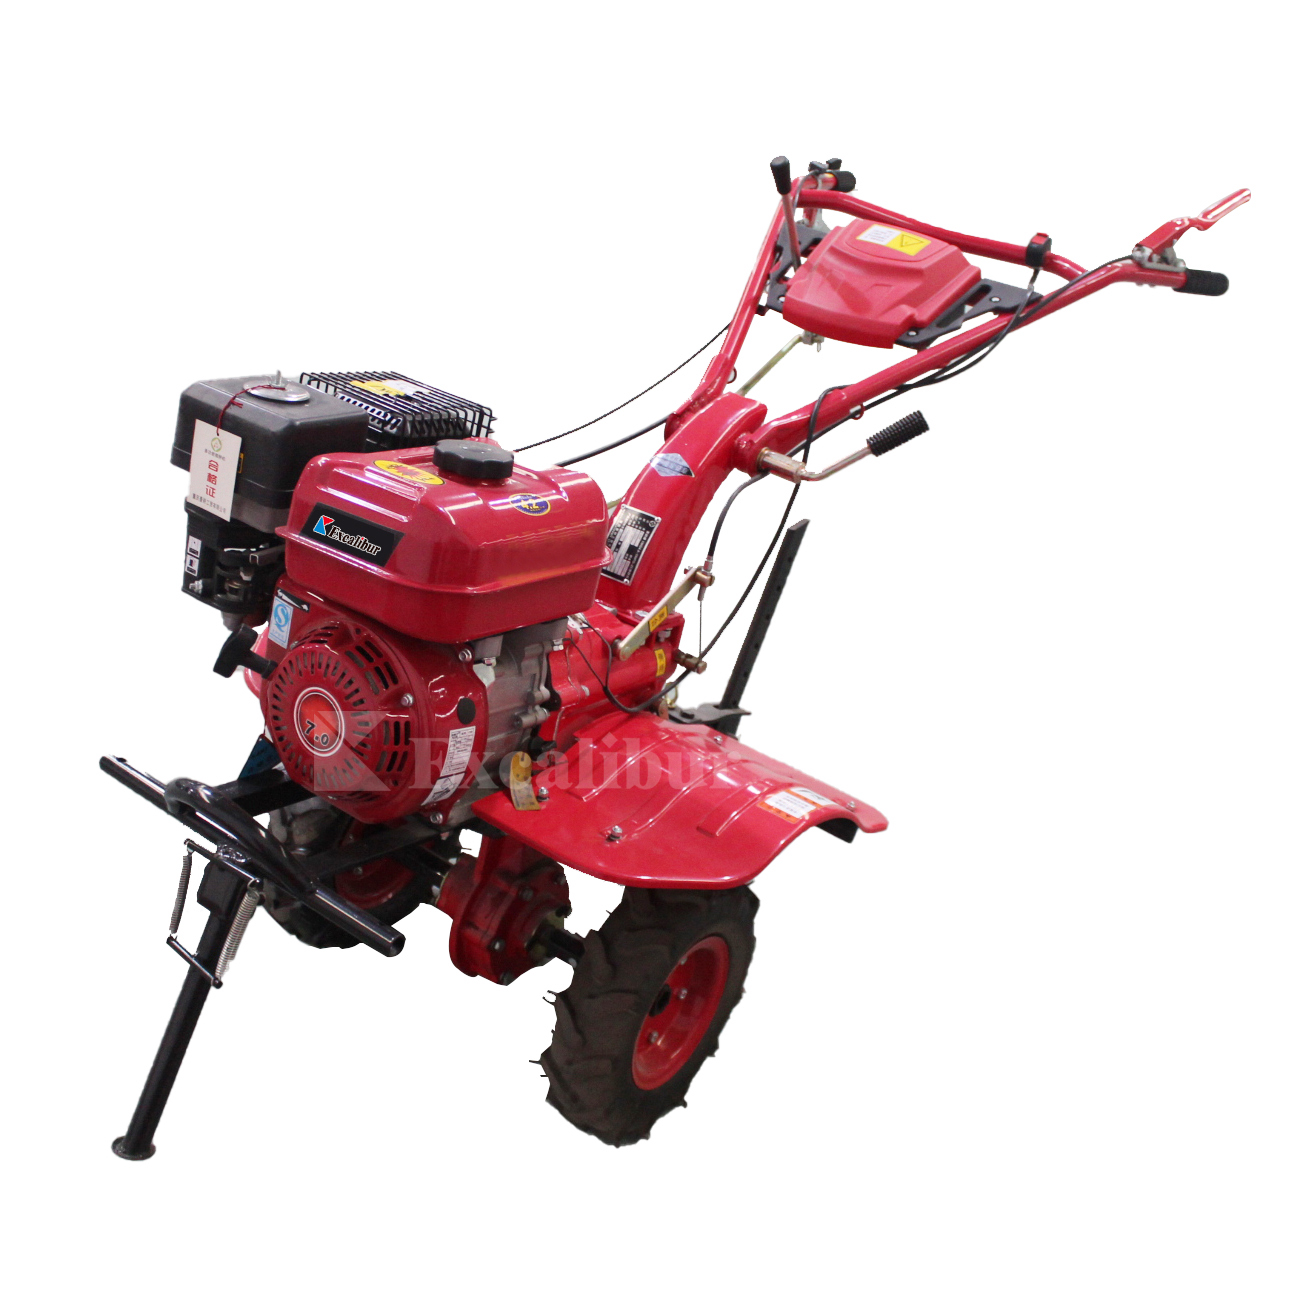 Excalibur Tiller Cultivator Mini Rotary Cultivator Tillers And Cultivators For Sales